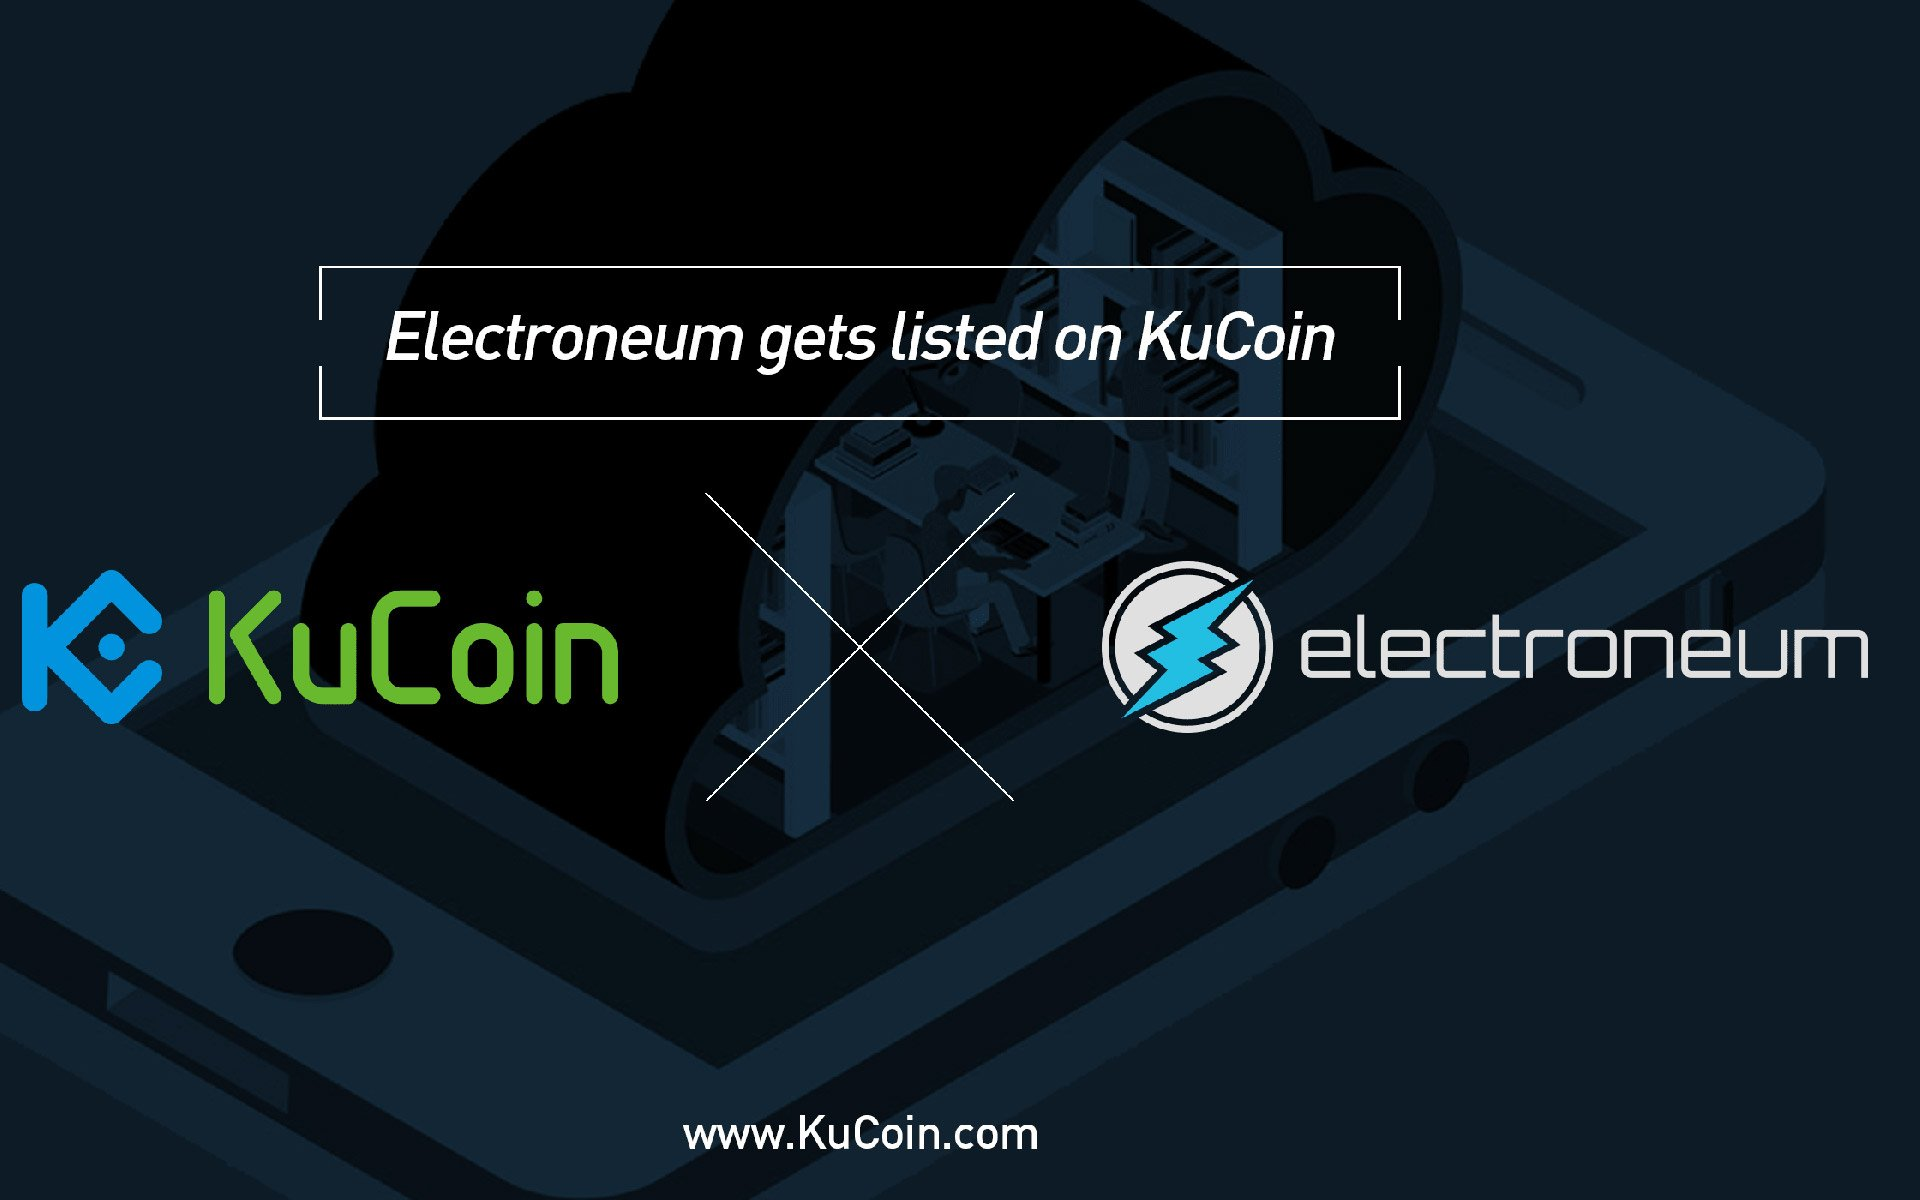 Electroneum (ETN) Gets Listed On KuCoin